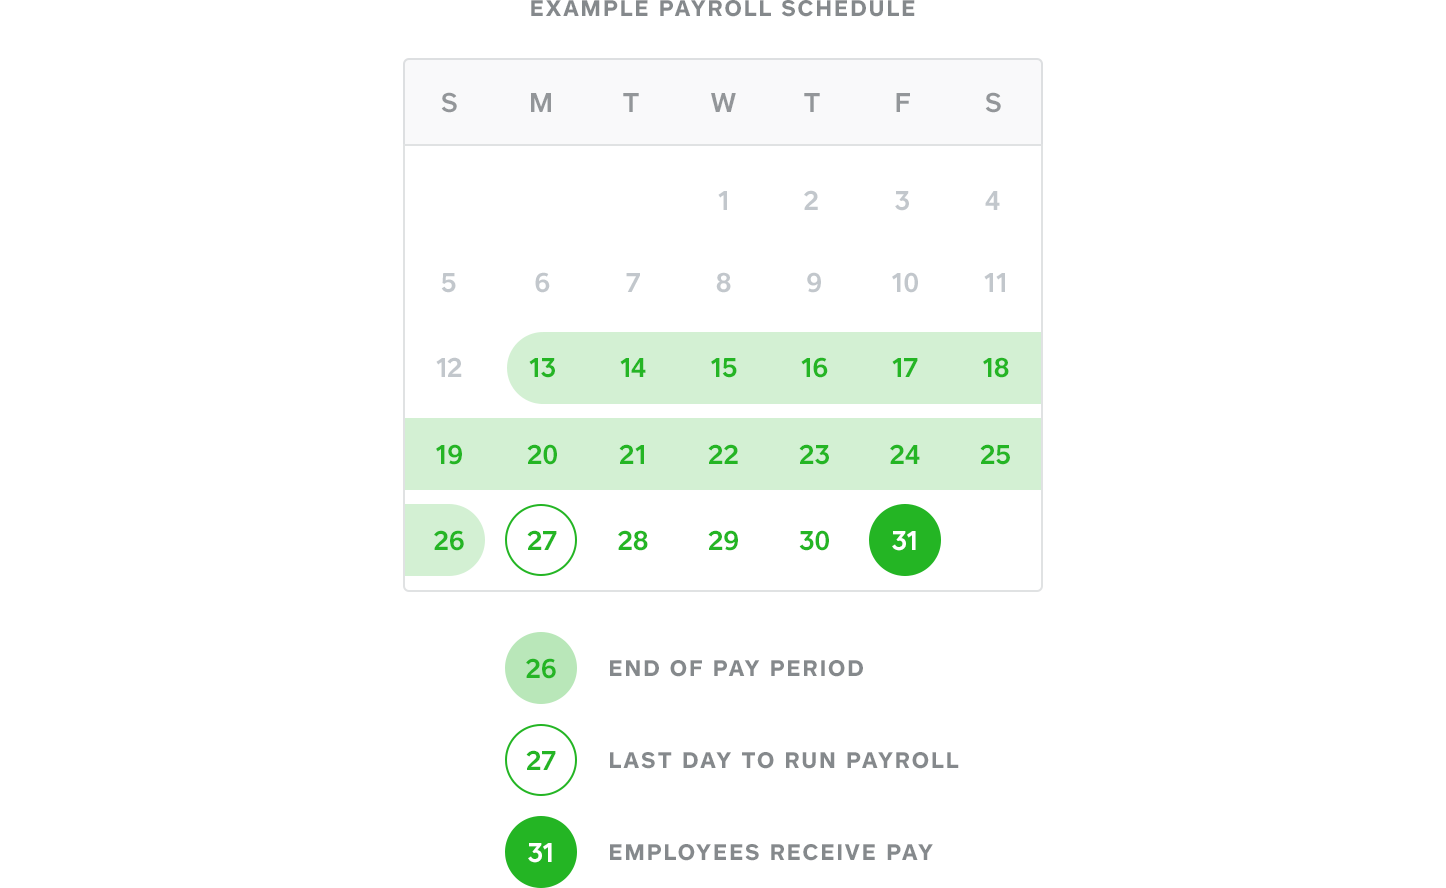 Diagram displaying Square Payroll's debit and deposit schedule.